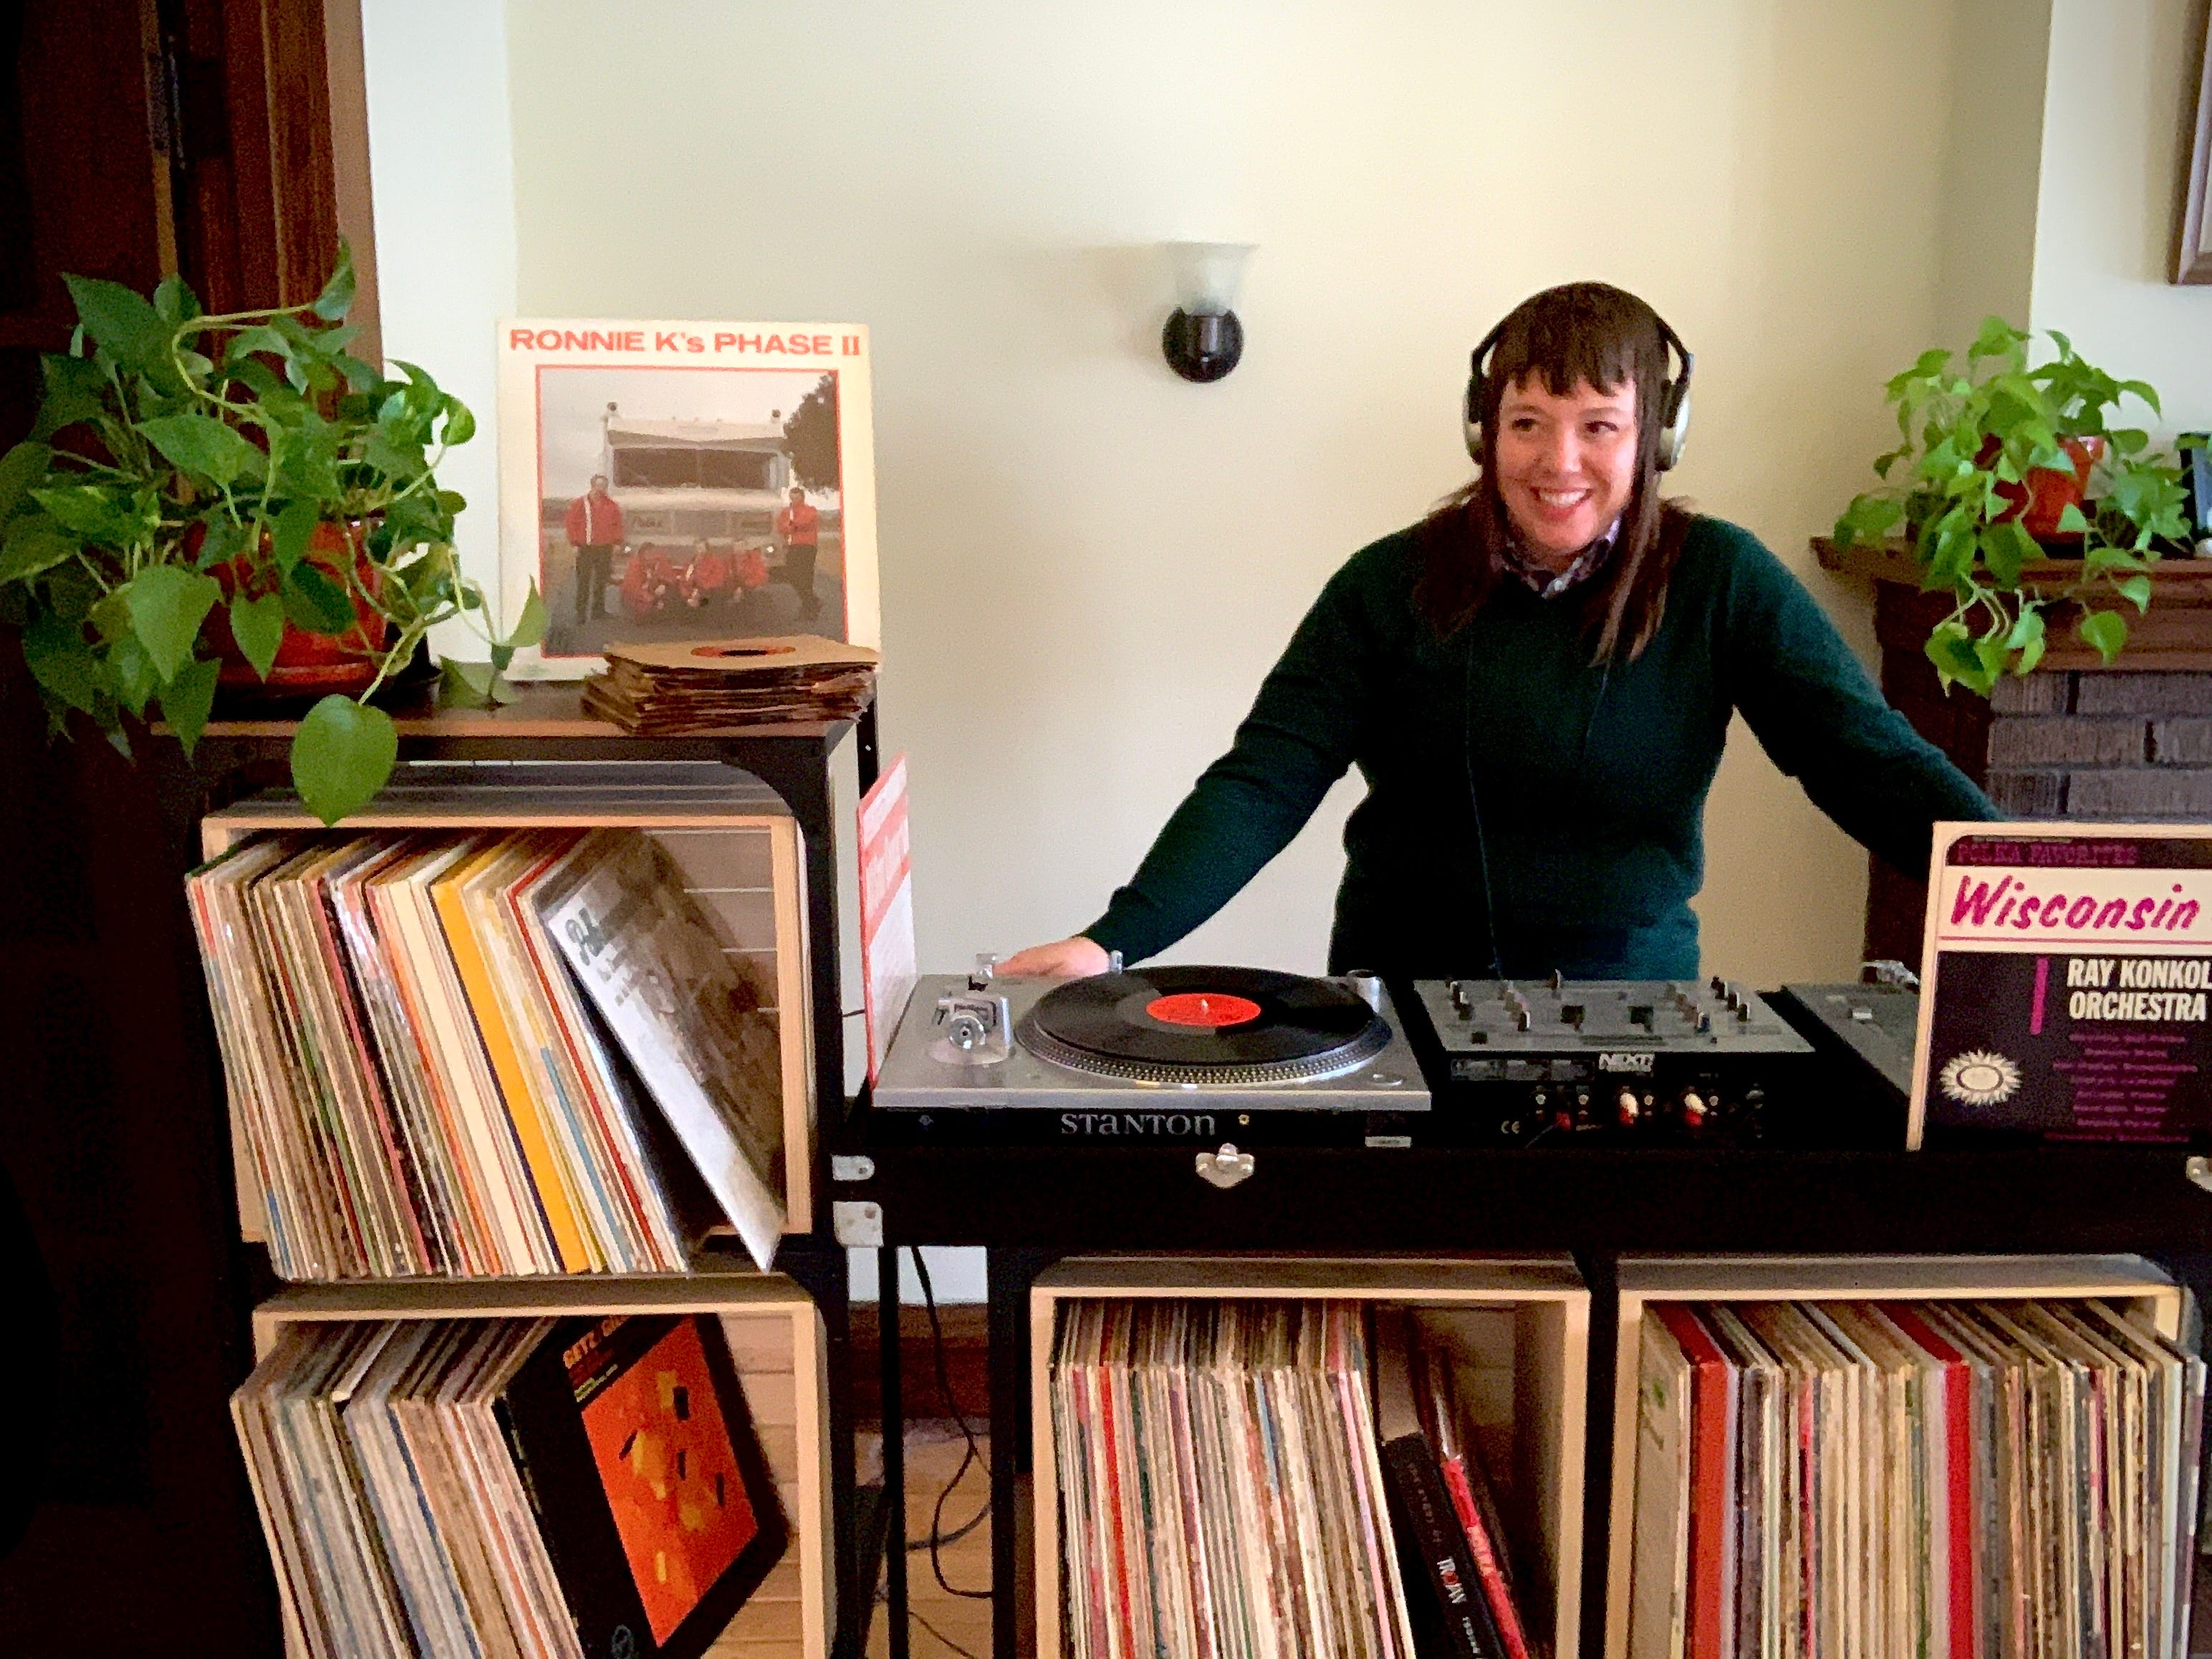 A Wisconsinite took up Polka DJing as a hobby during the pandemic